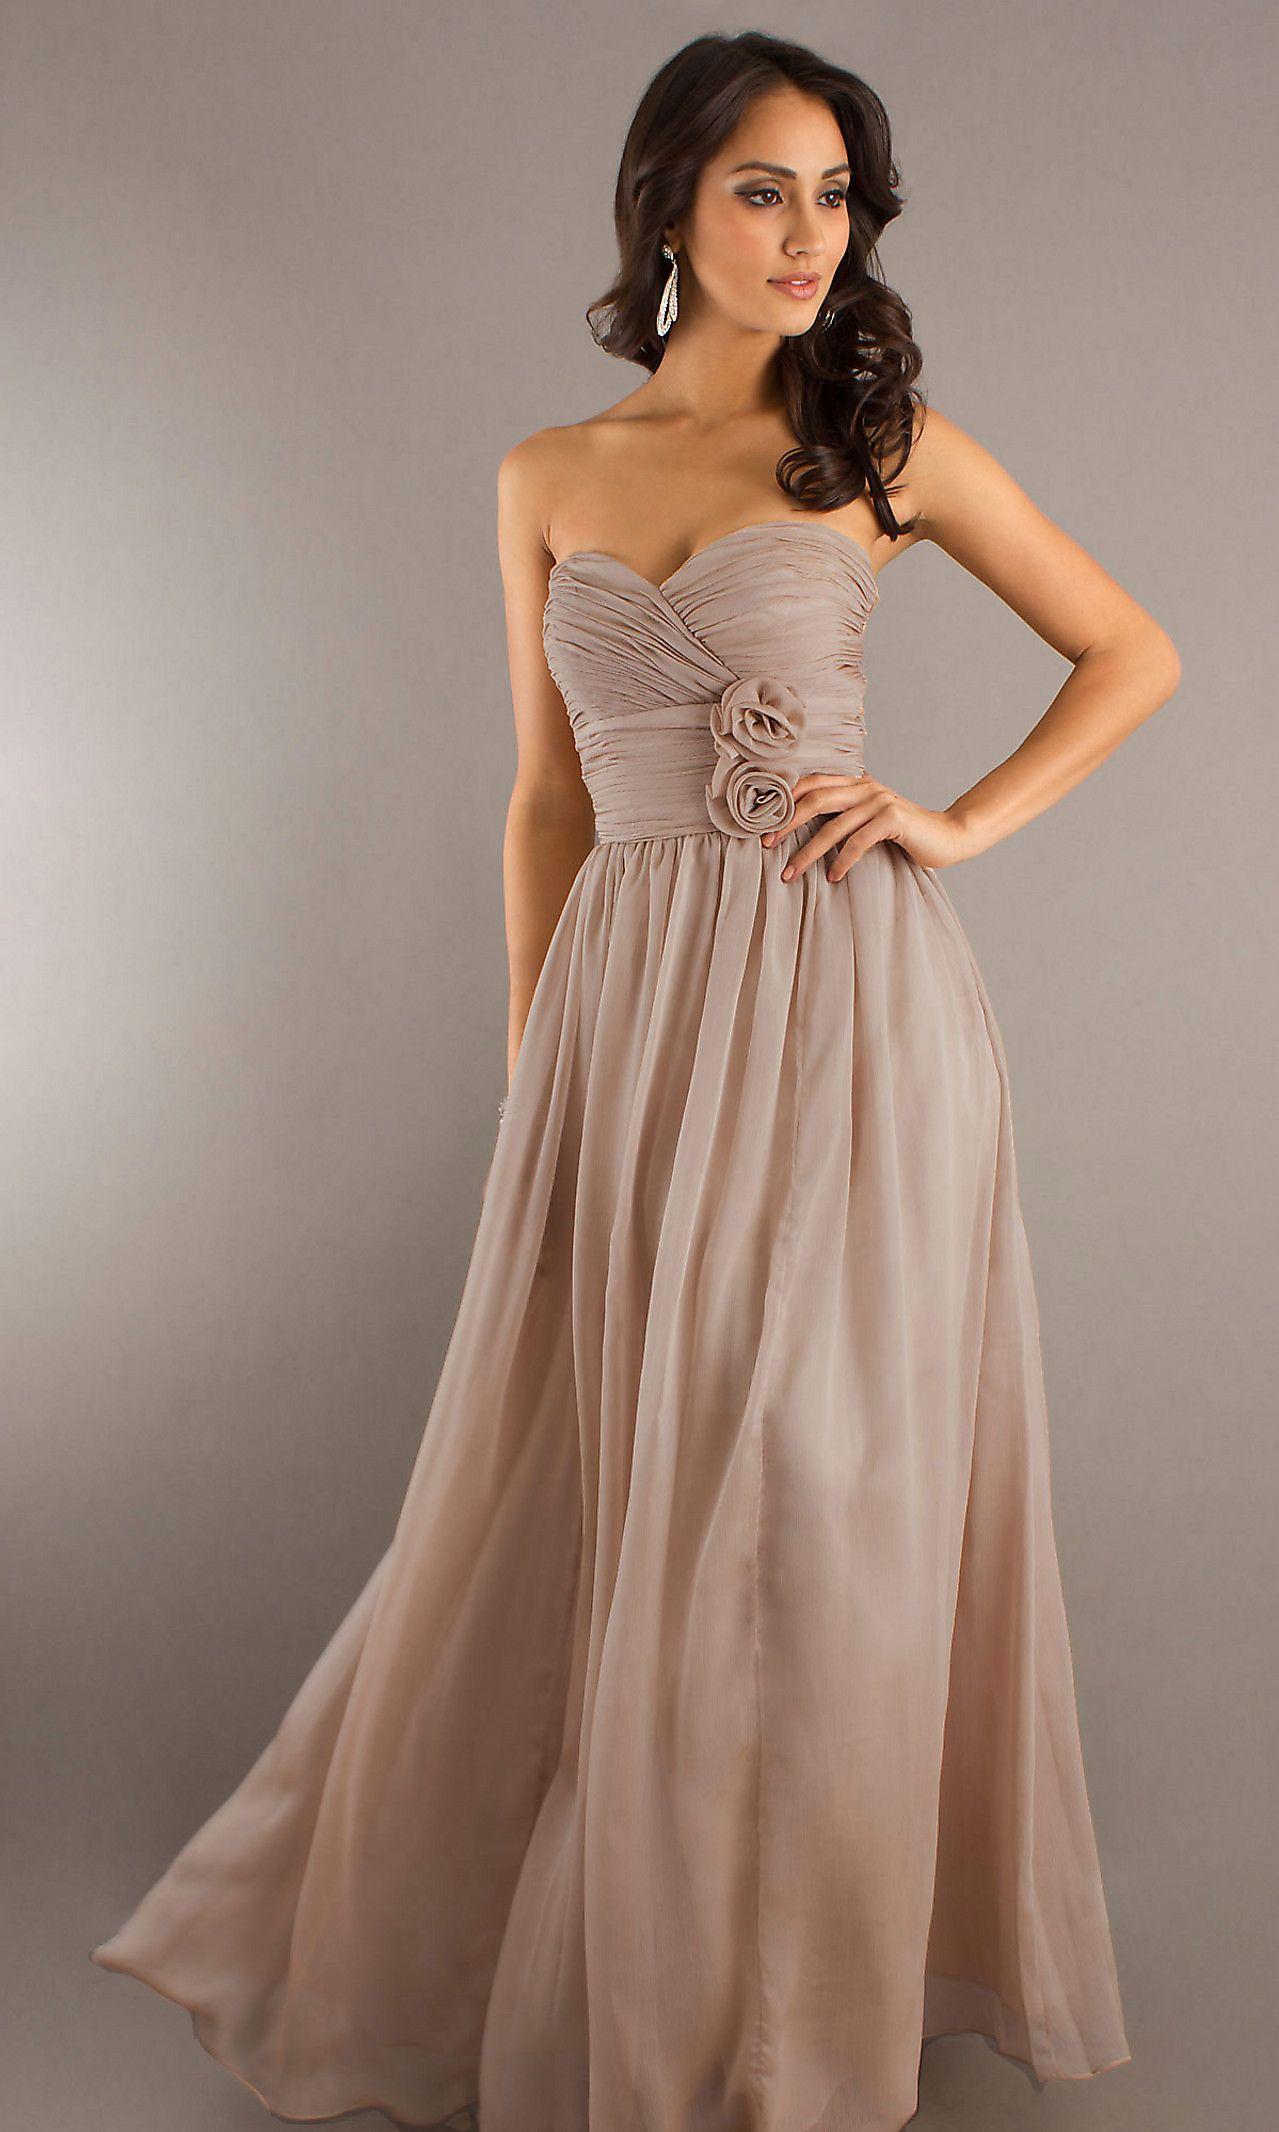 Classic long strapless sweetheart gown po ahoy there